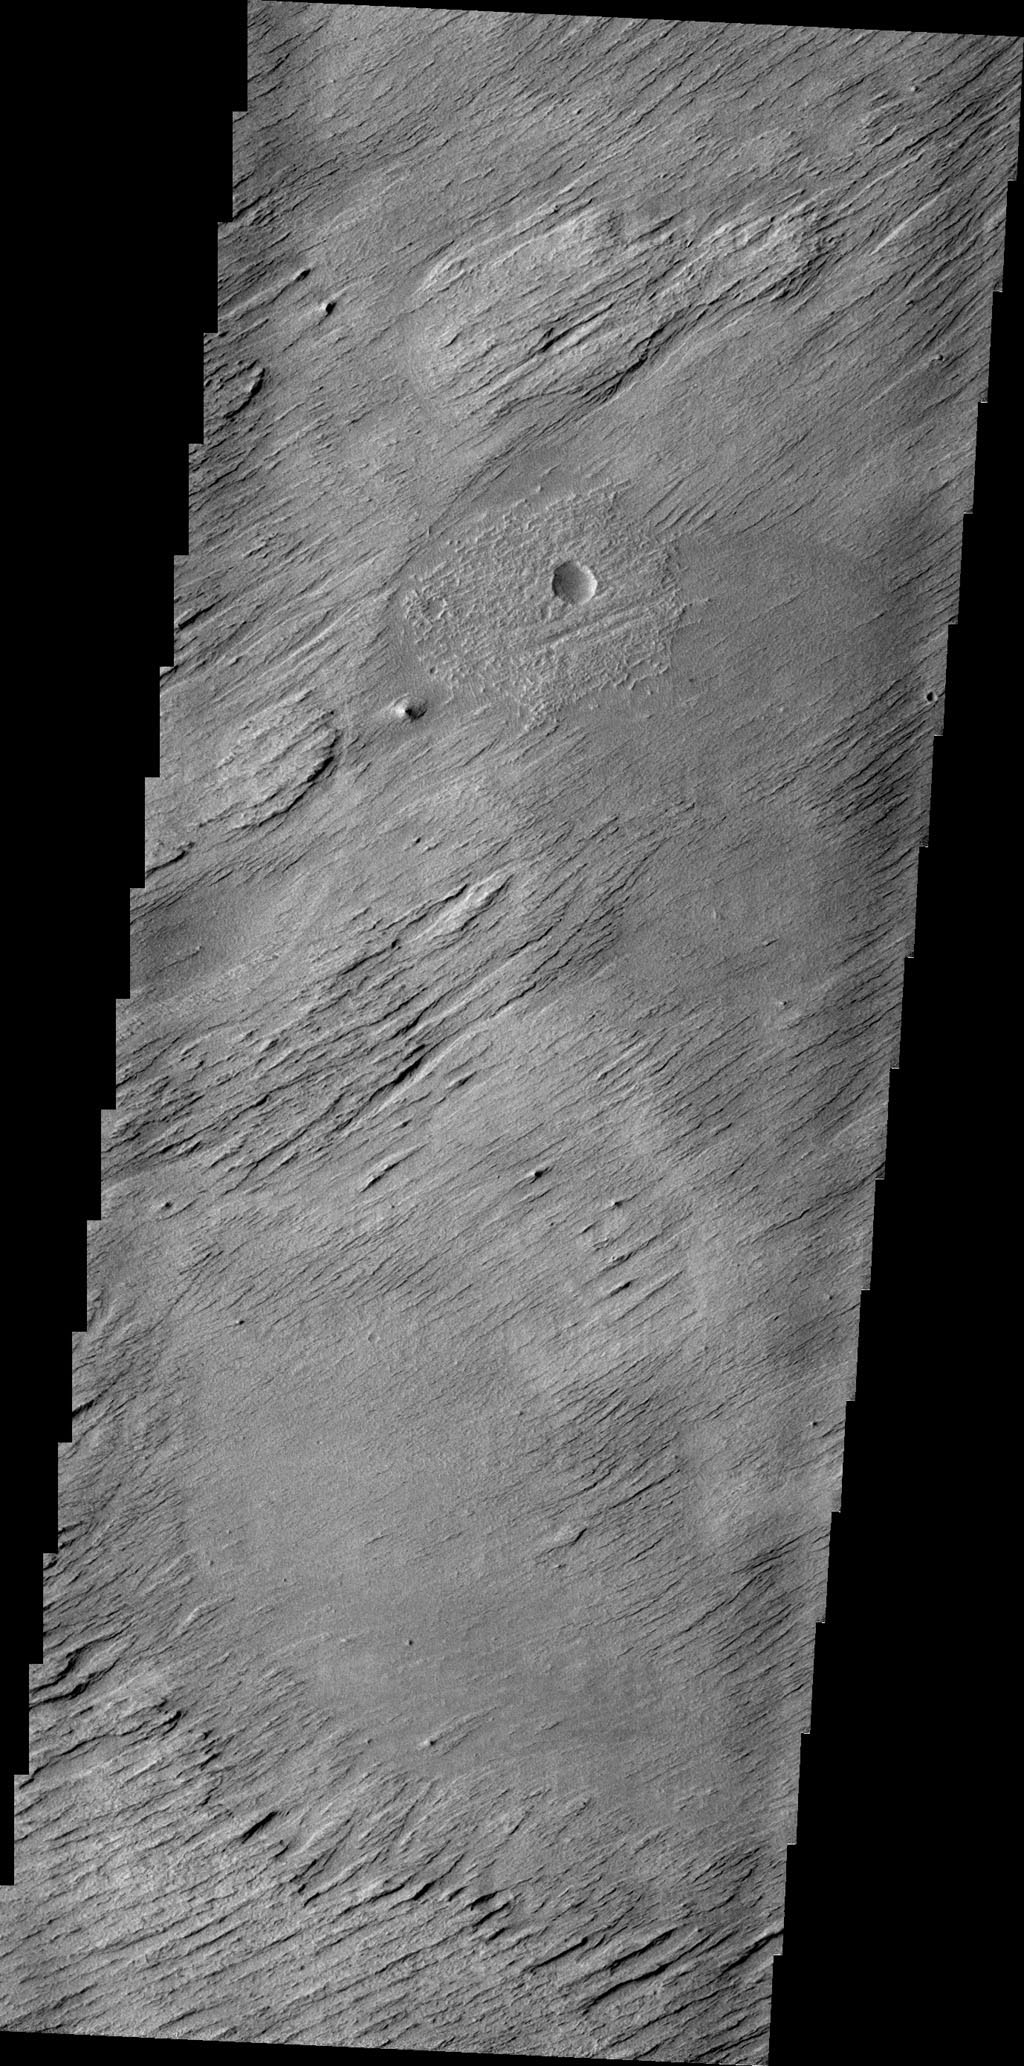 The main agent of erosion on Mars today is the wind. Wind has sculpted the surface in this region into a set of hills and valleys called yardangs on Earth. This image is from NASA's 2001 Mars Odyssey spacecraft.